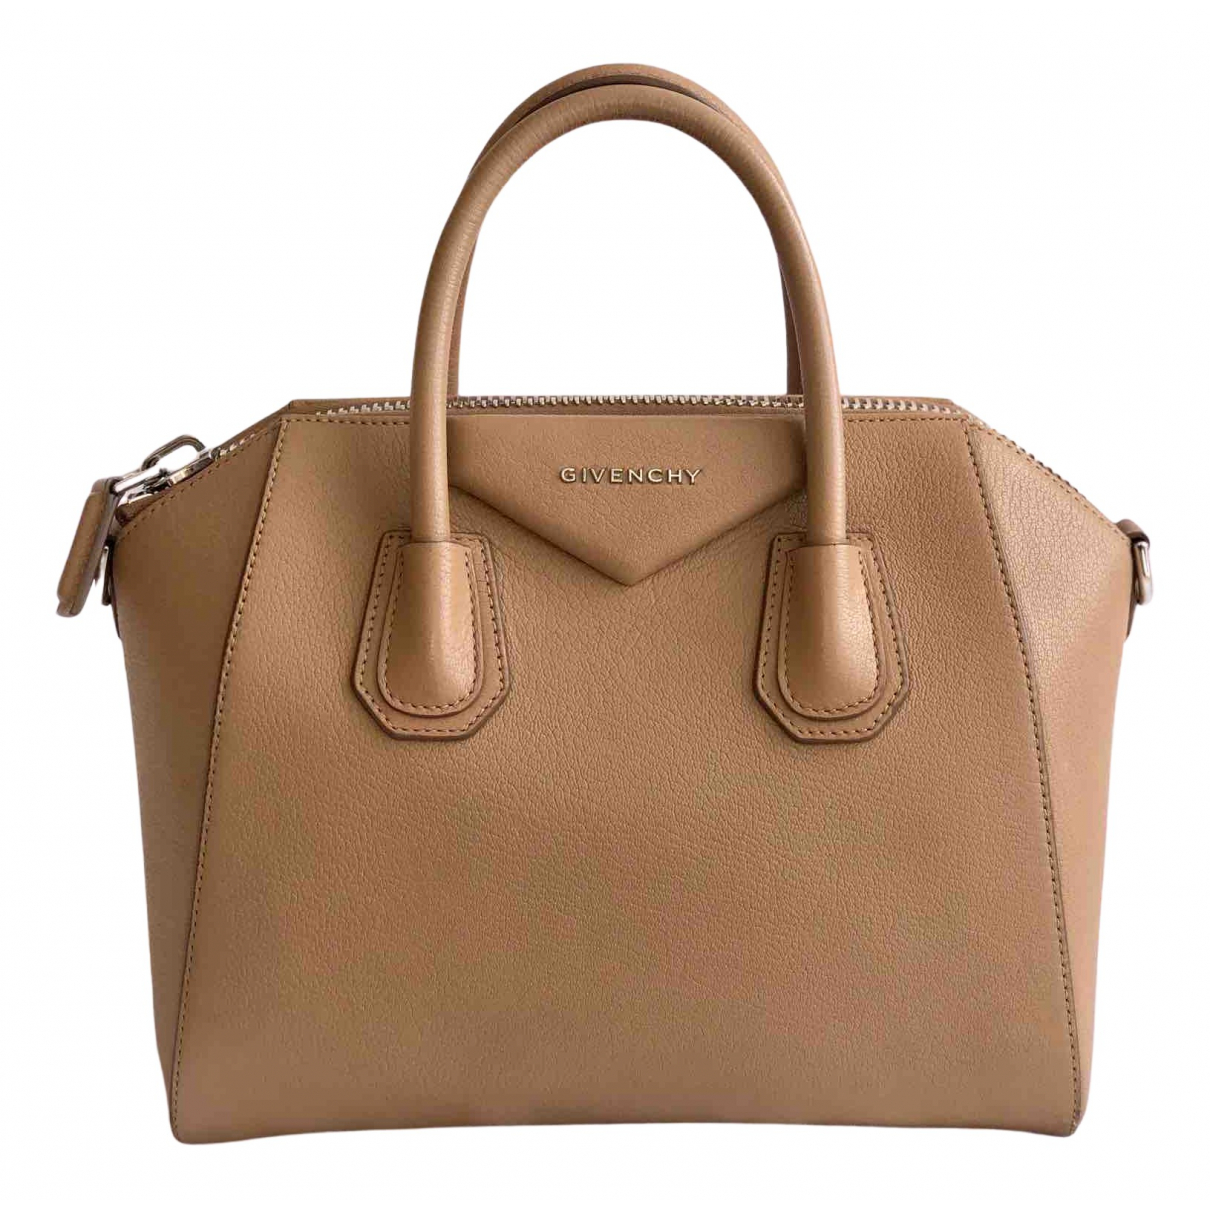 Givenchy Antigona Camel Leather handbag for Women N